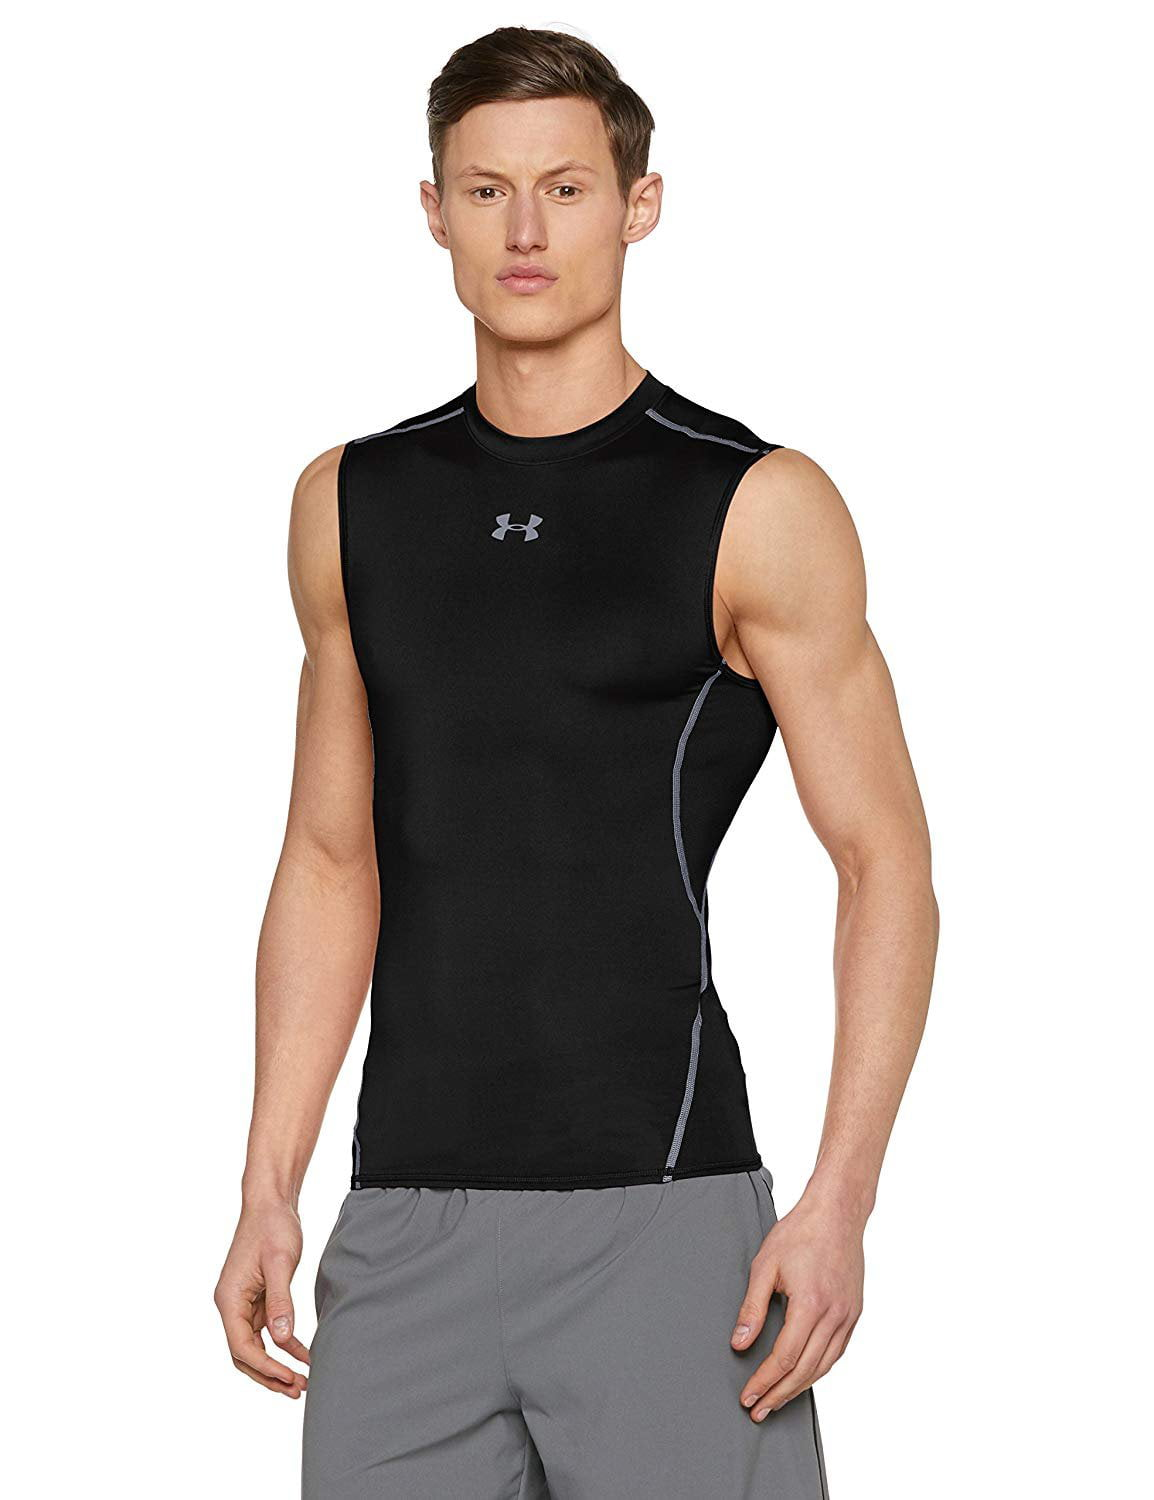 Under Armour Men/'s Sleeveless Armour Compression T-Shirt RED bnwt.